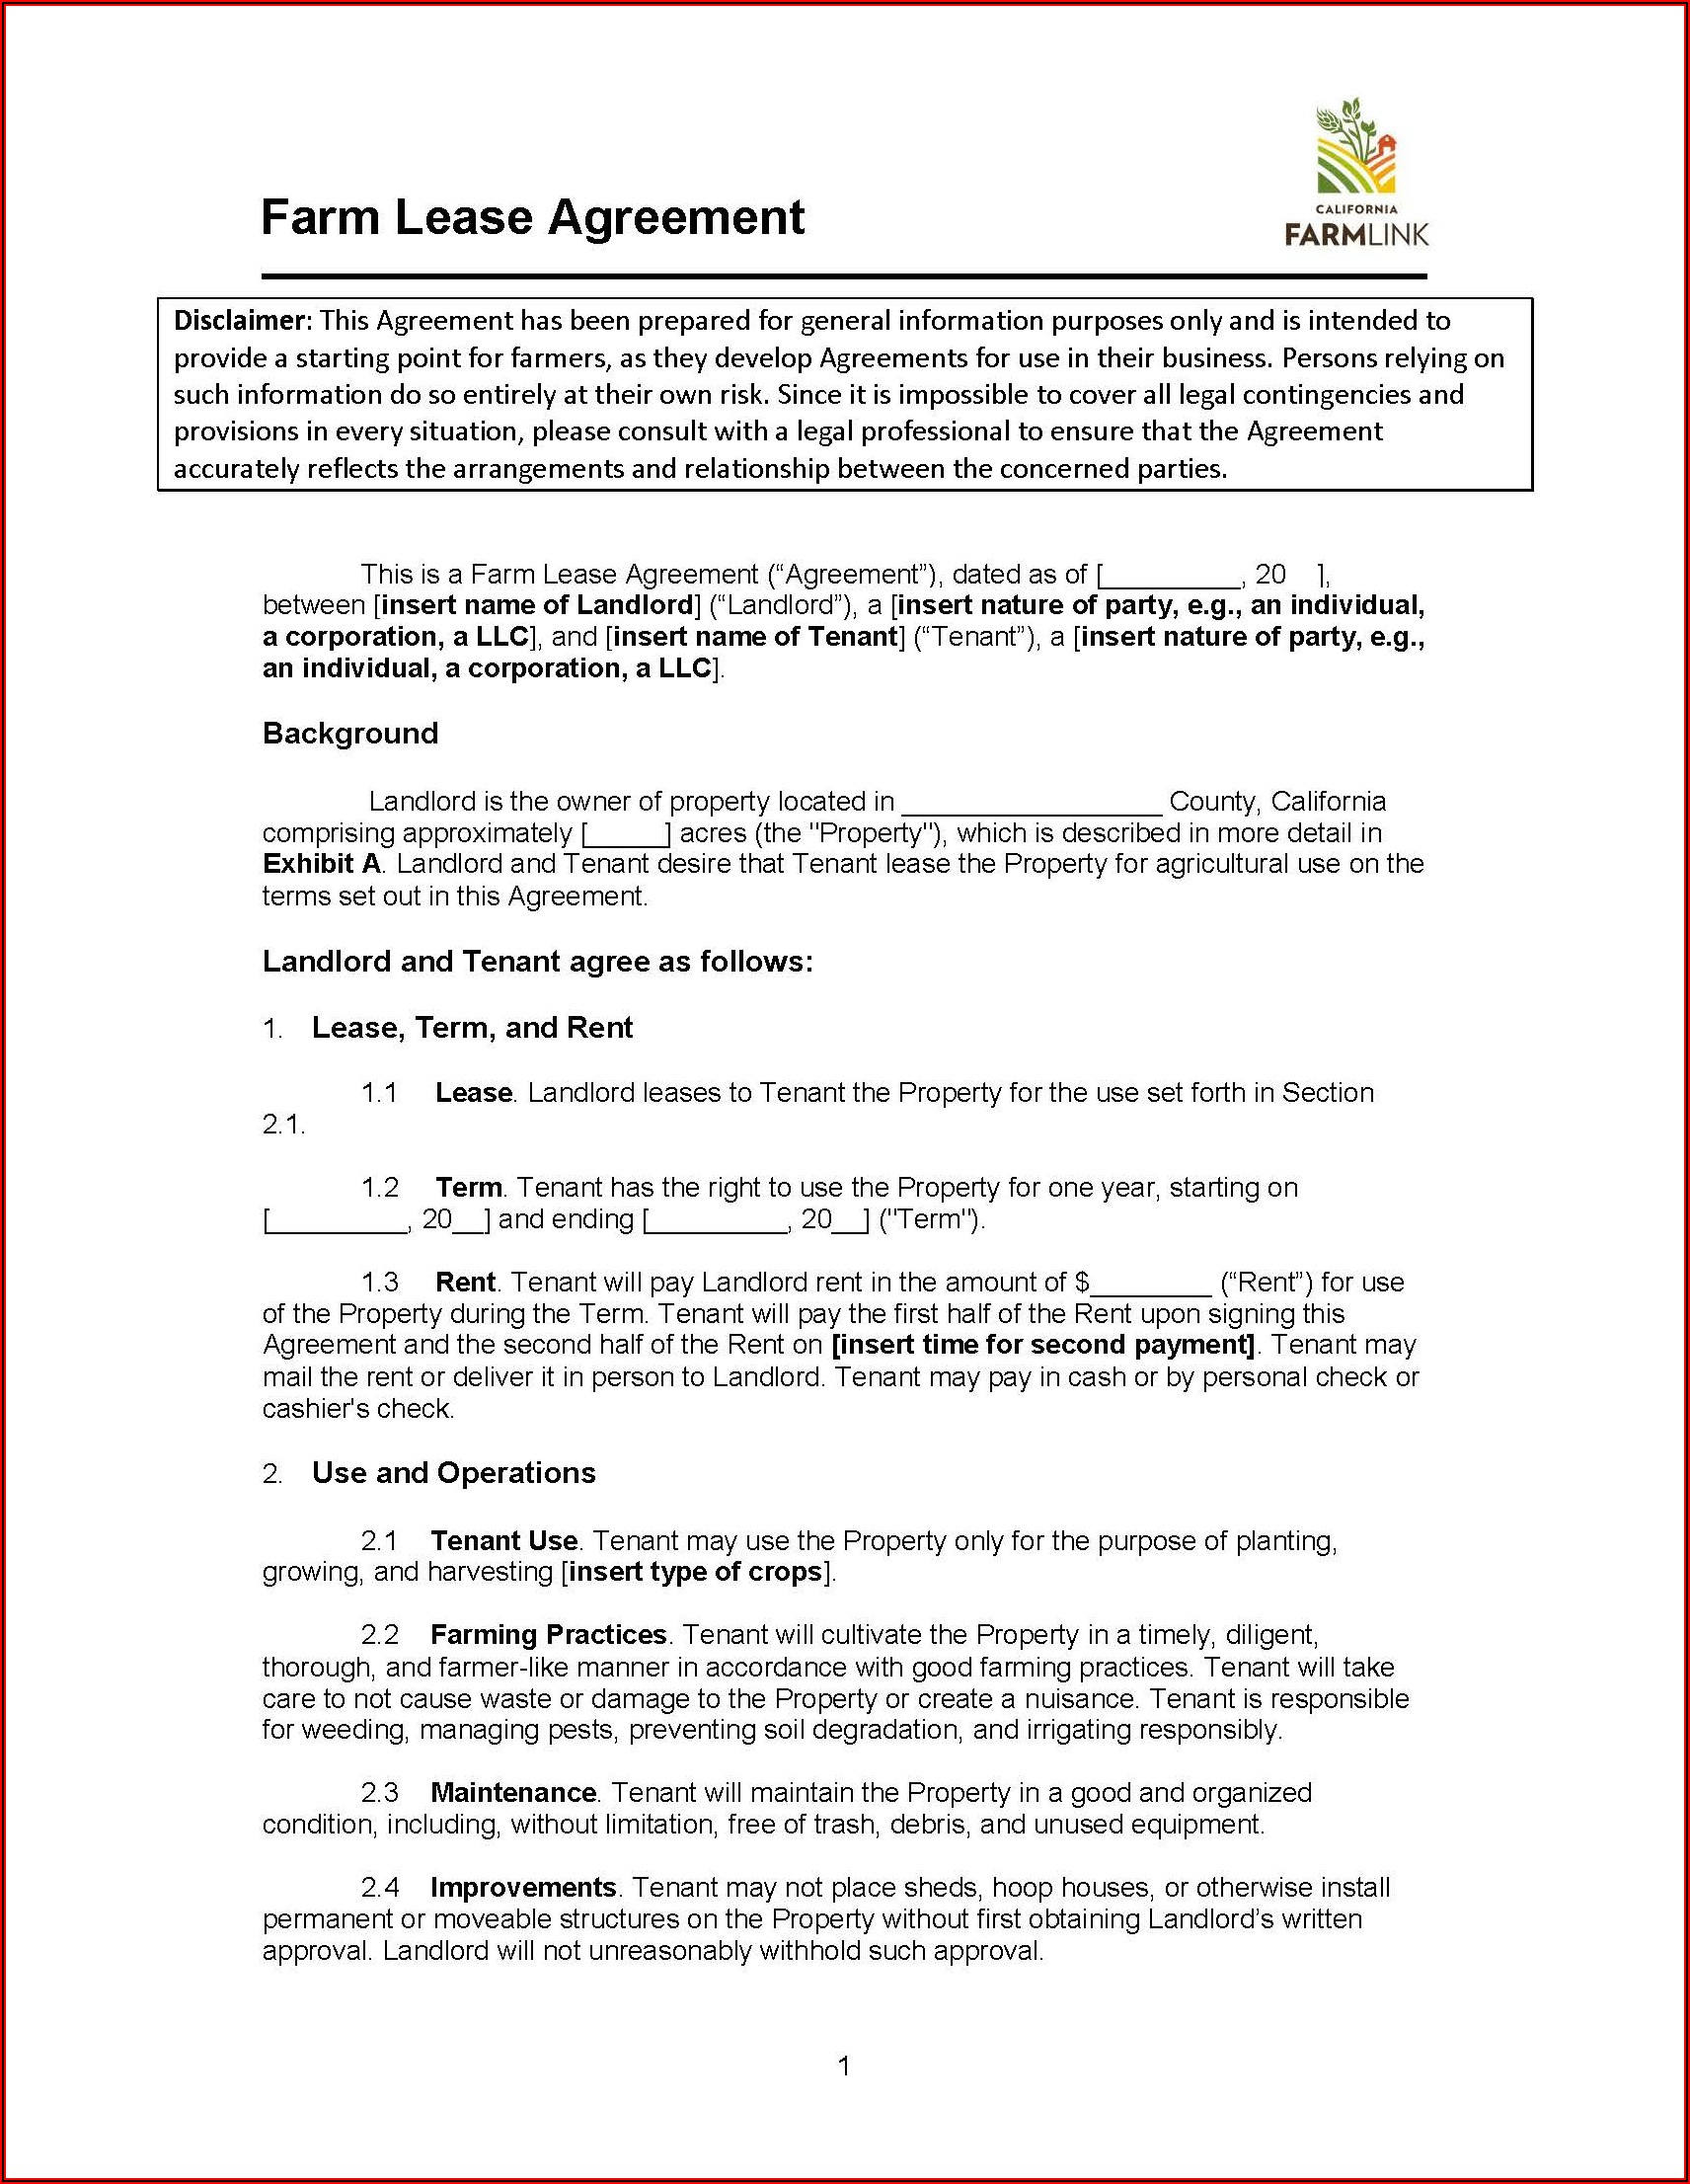 Land Lease Agreement Template